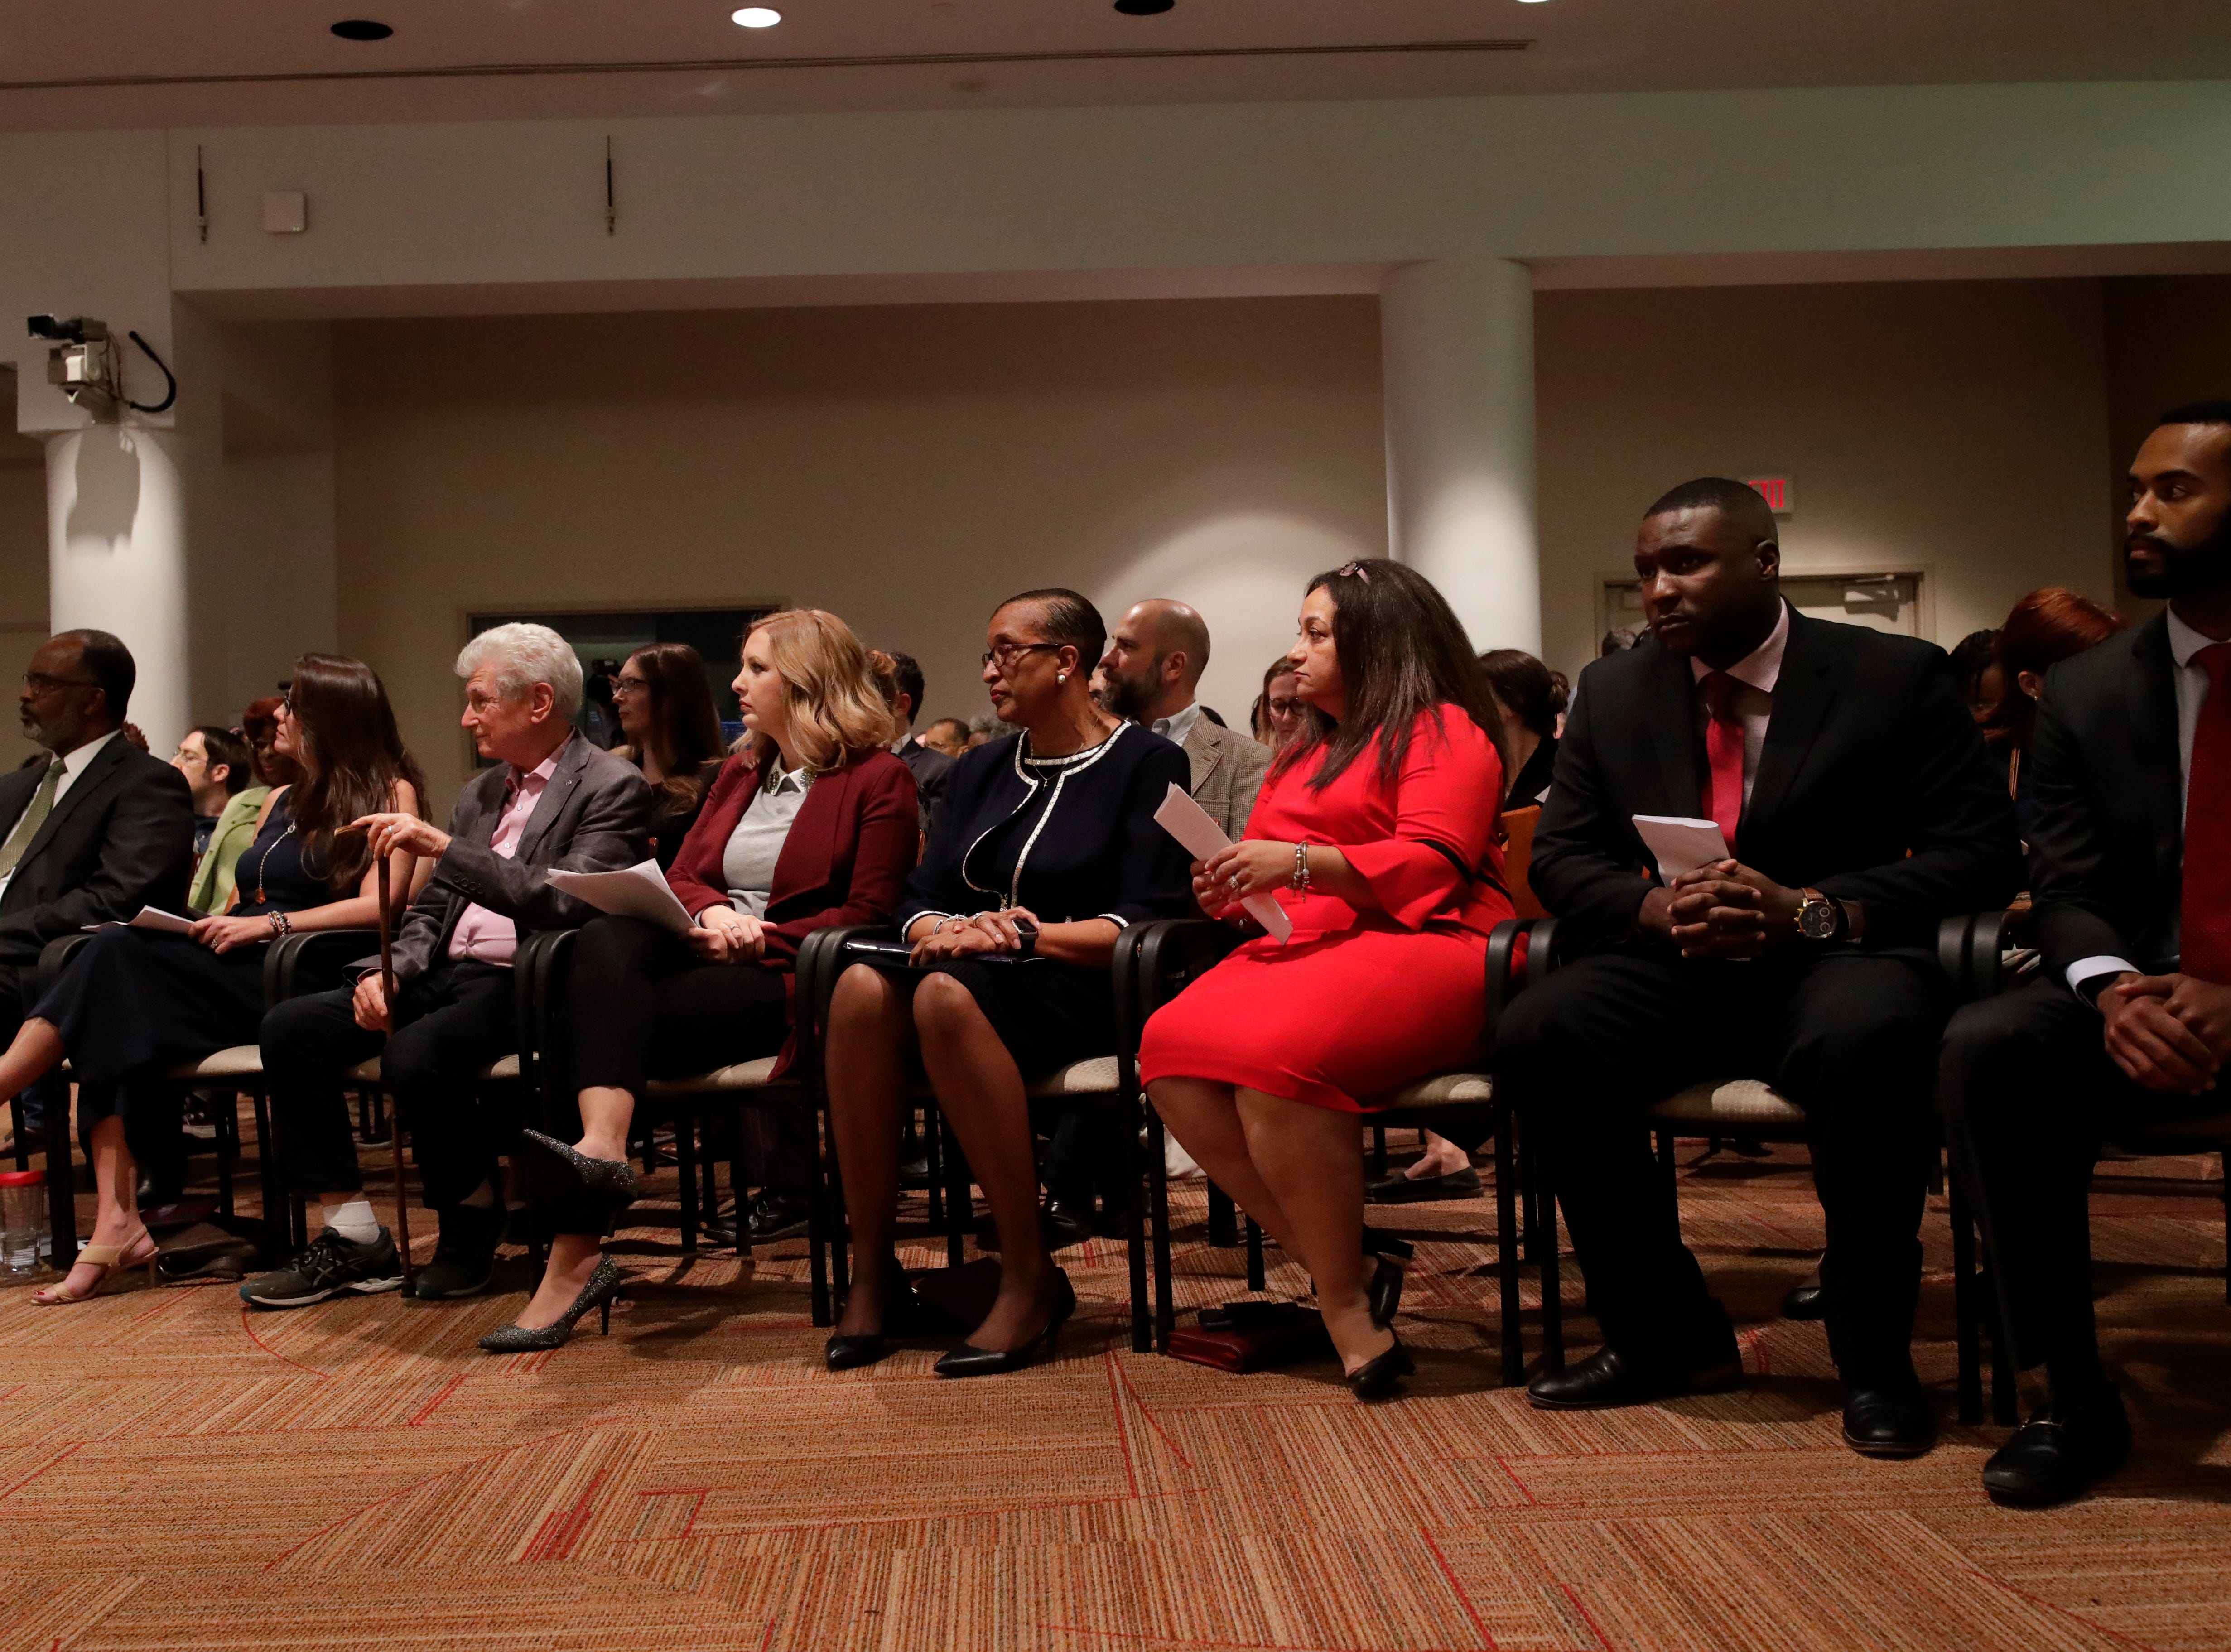 The nine candidates looking to replace Scott Maddox as City Commissioner await their turn to promote themselves for the position at the City Commission meeting, Monday, Dec. 31, 2018.